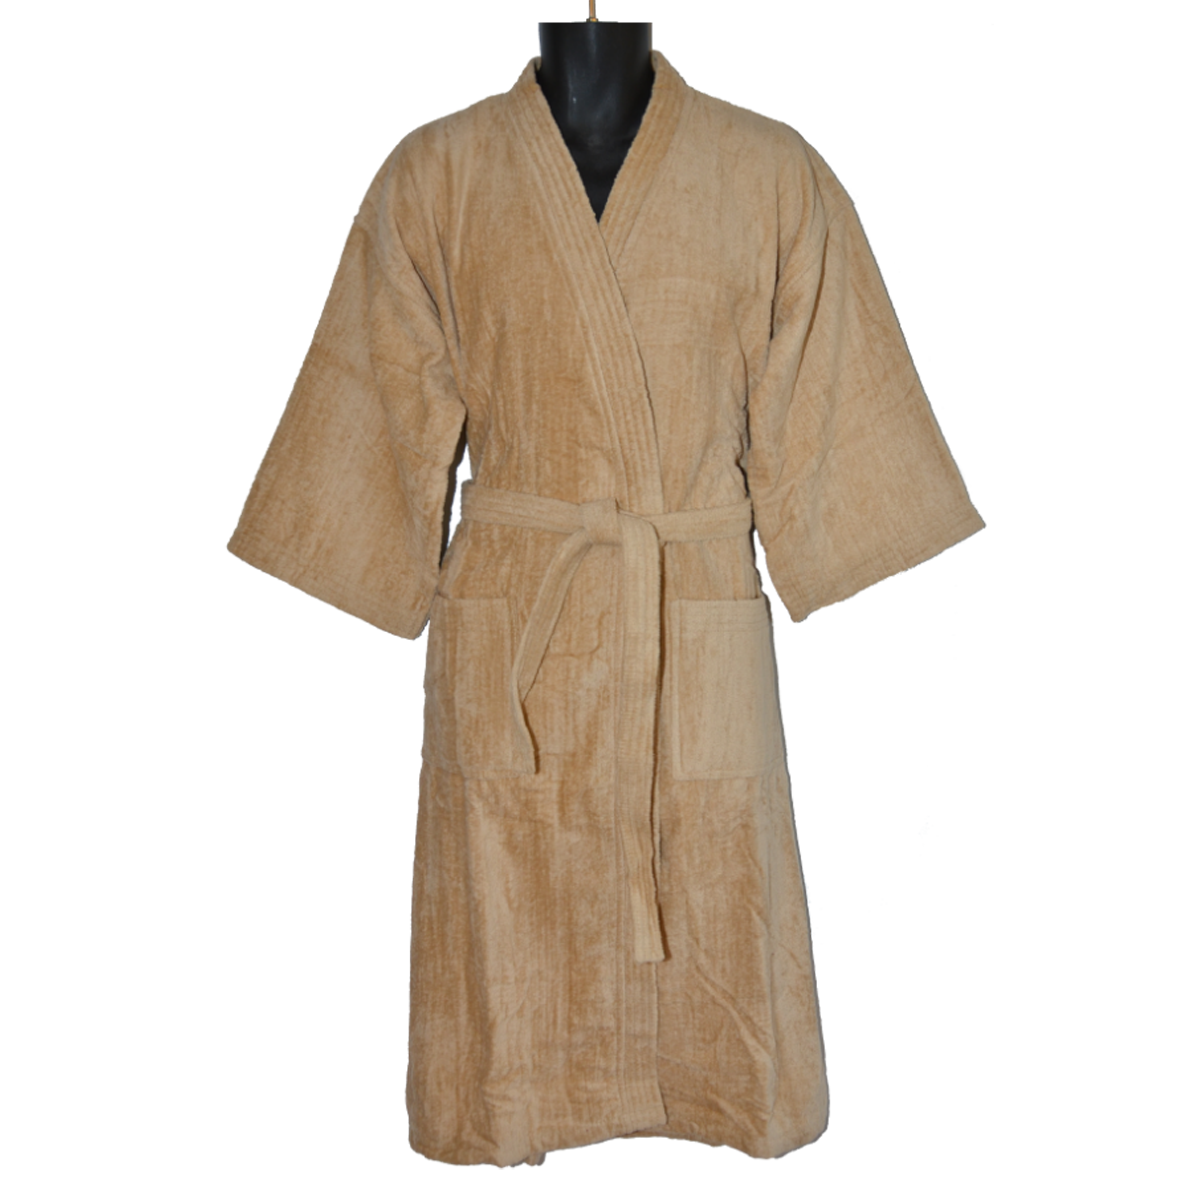 Bathroom robes